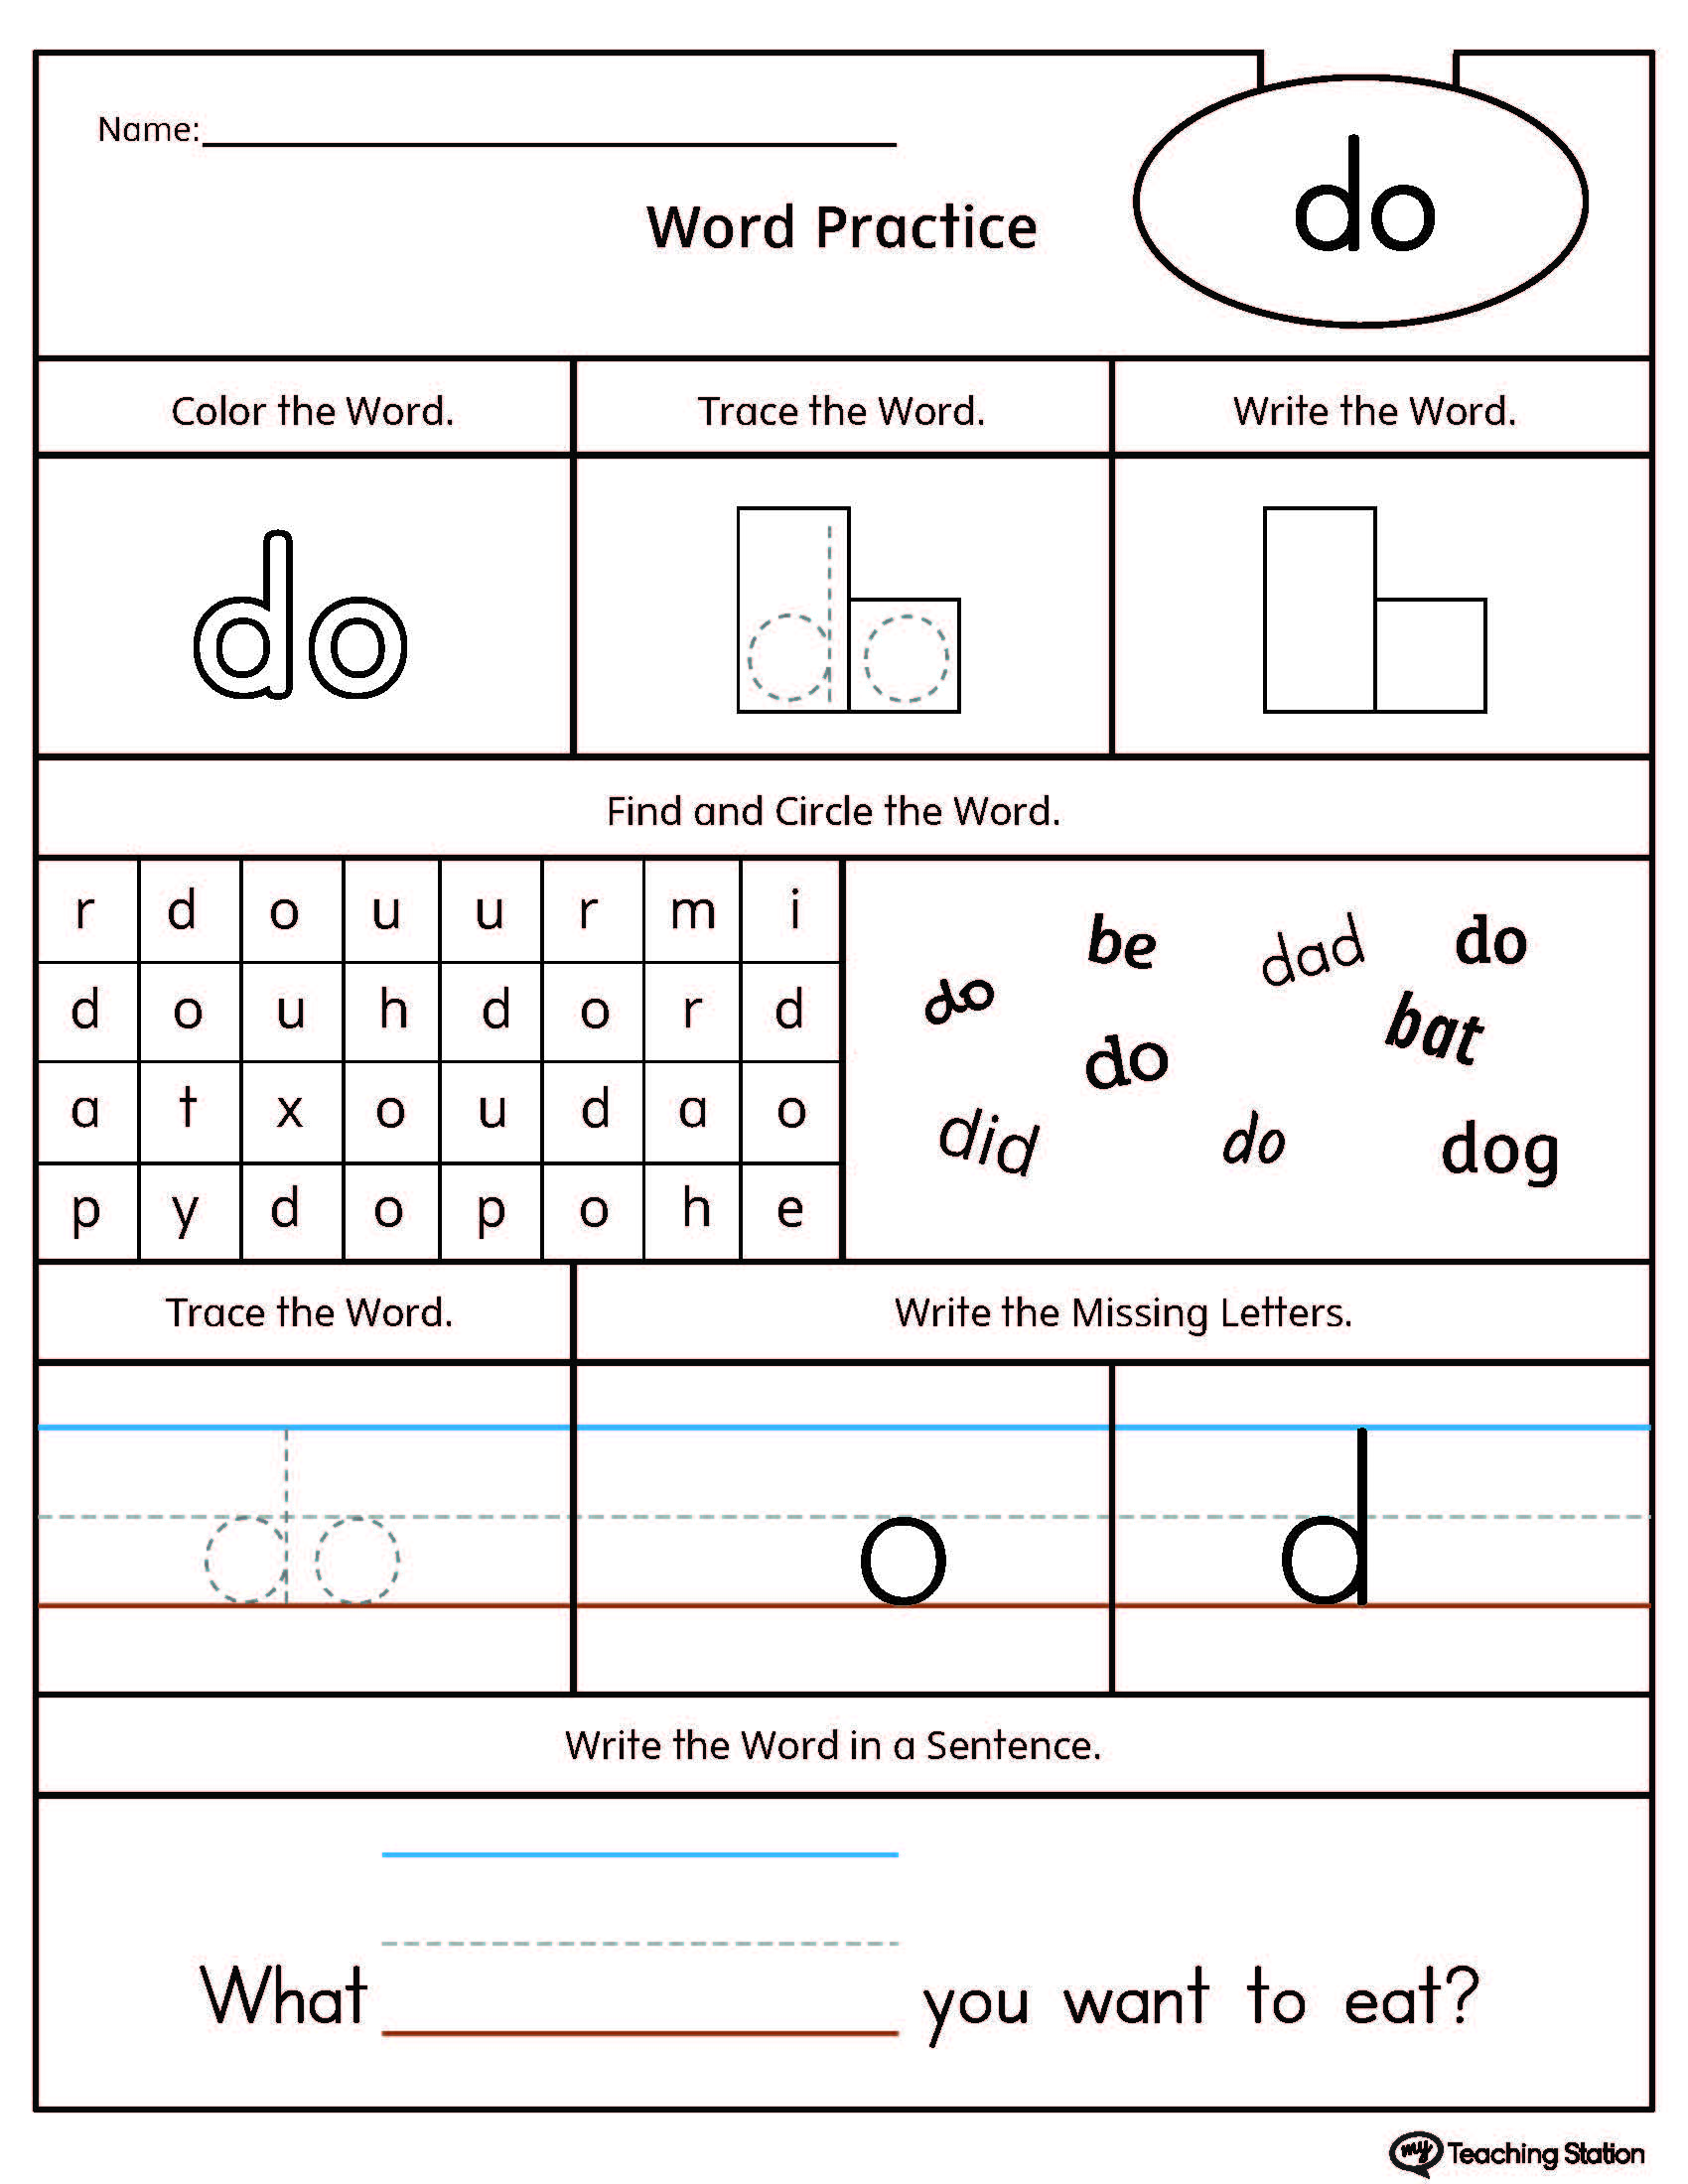 Worksheets Free Printable Sight Word Worksheets high frequency words printable worksheets myteachingstation com word do worksheet